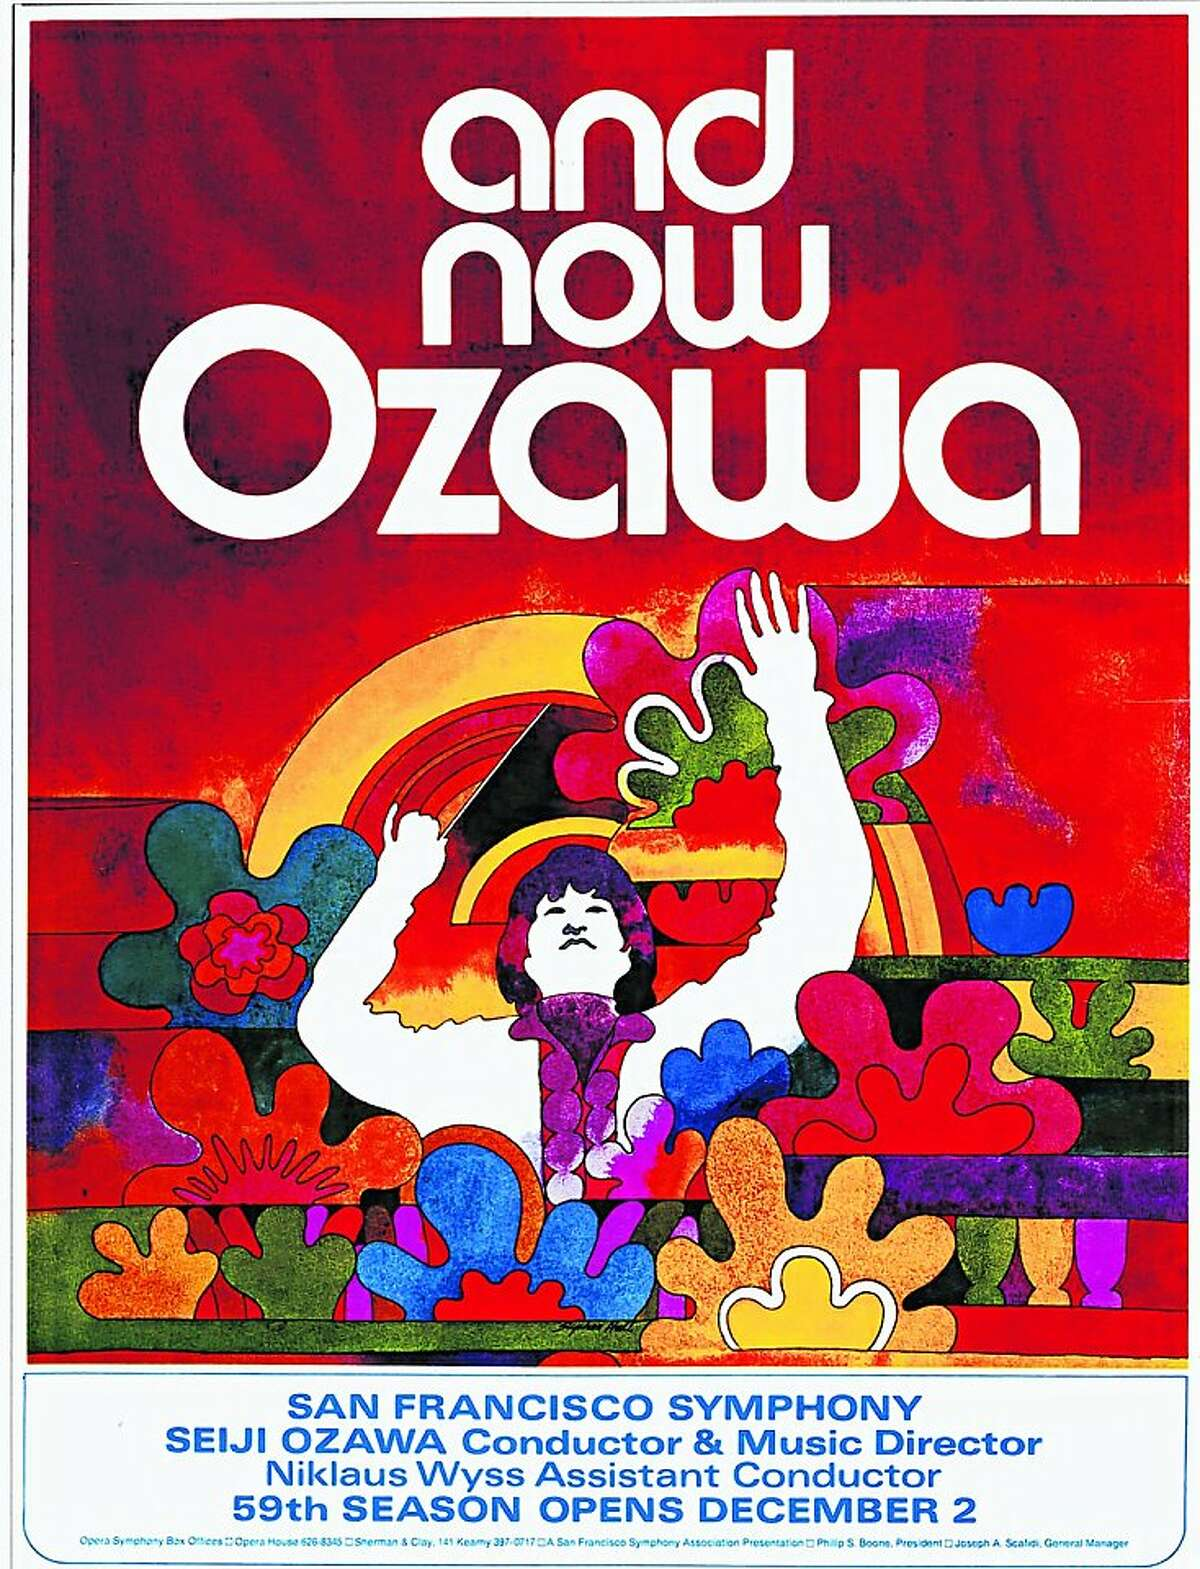 SFS at 100: Proof of poster announcing the 59th Season of the San Francisco Symphony and the debut season of Music Director Seiji Ozawa (1970).